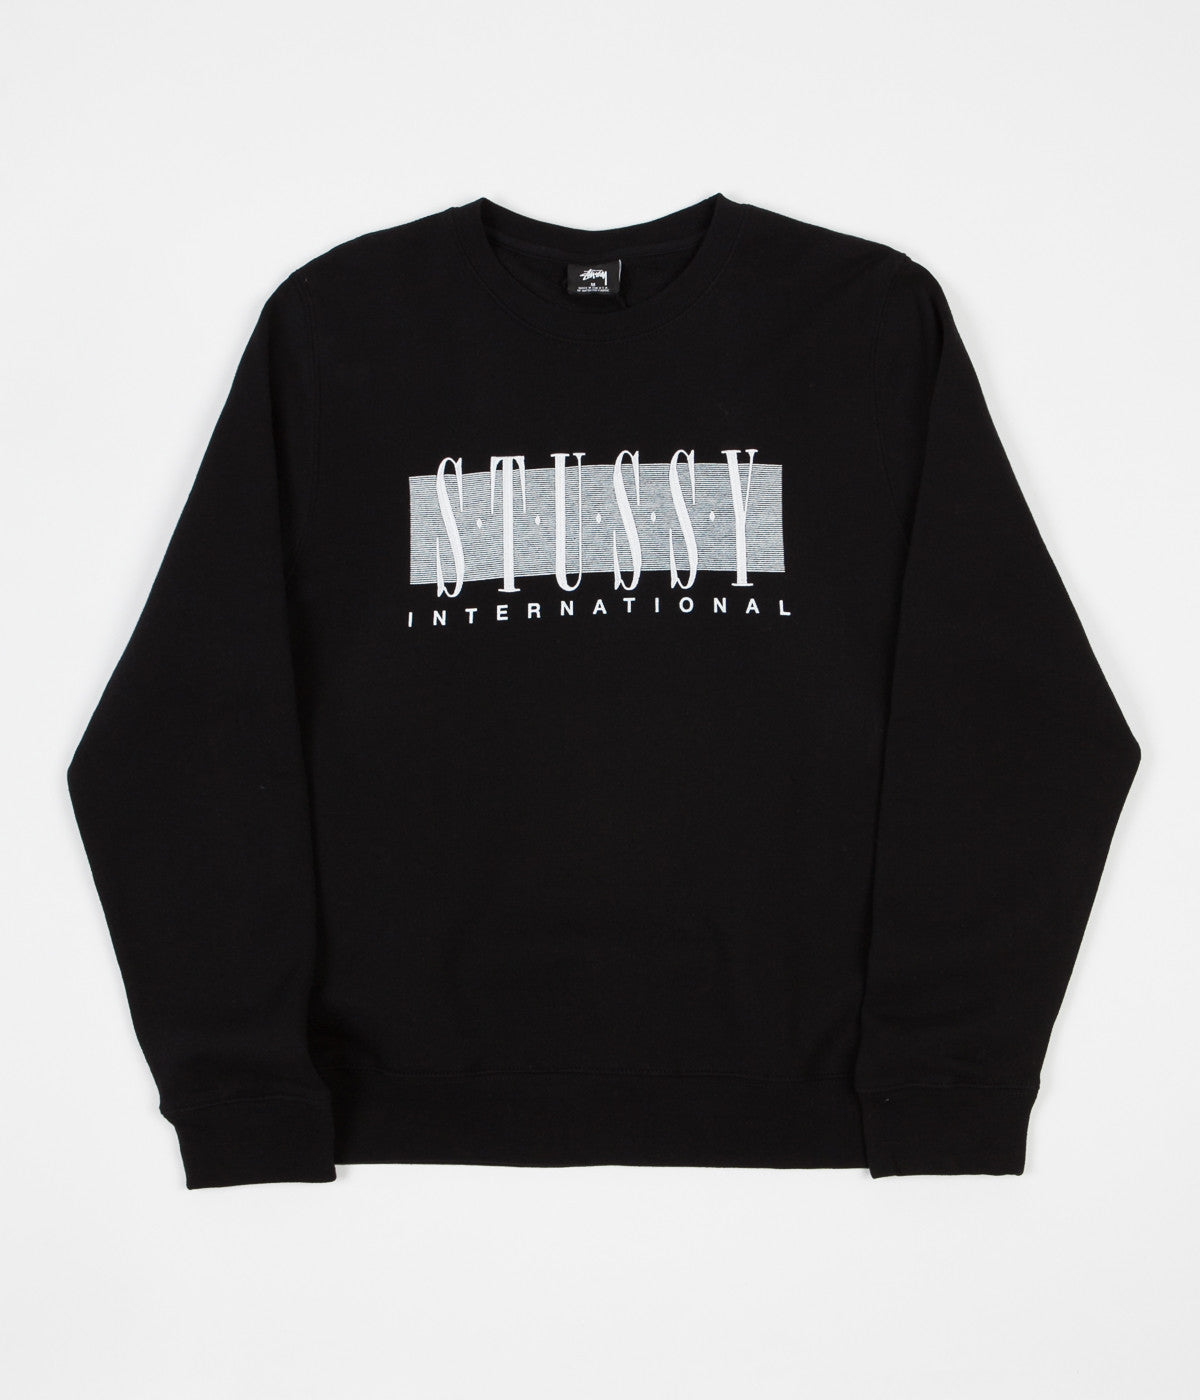 Stussy International Applique Crewneck Sweatshirt - Black